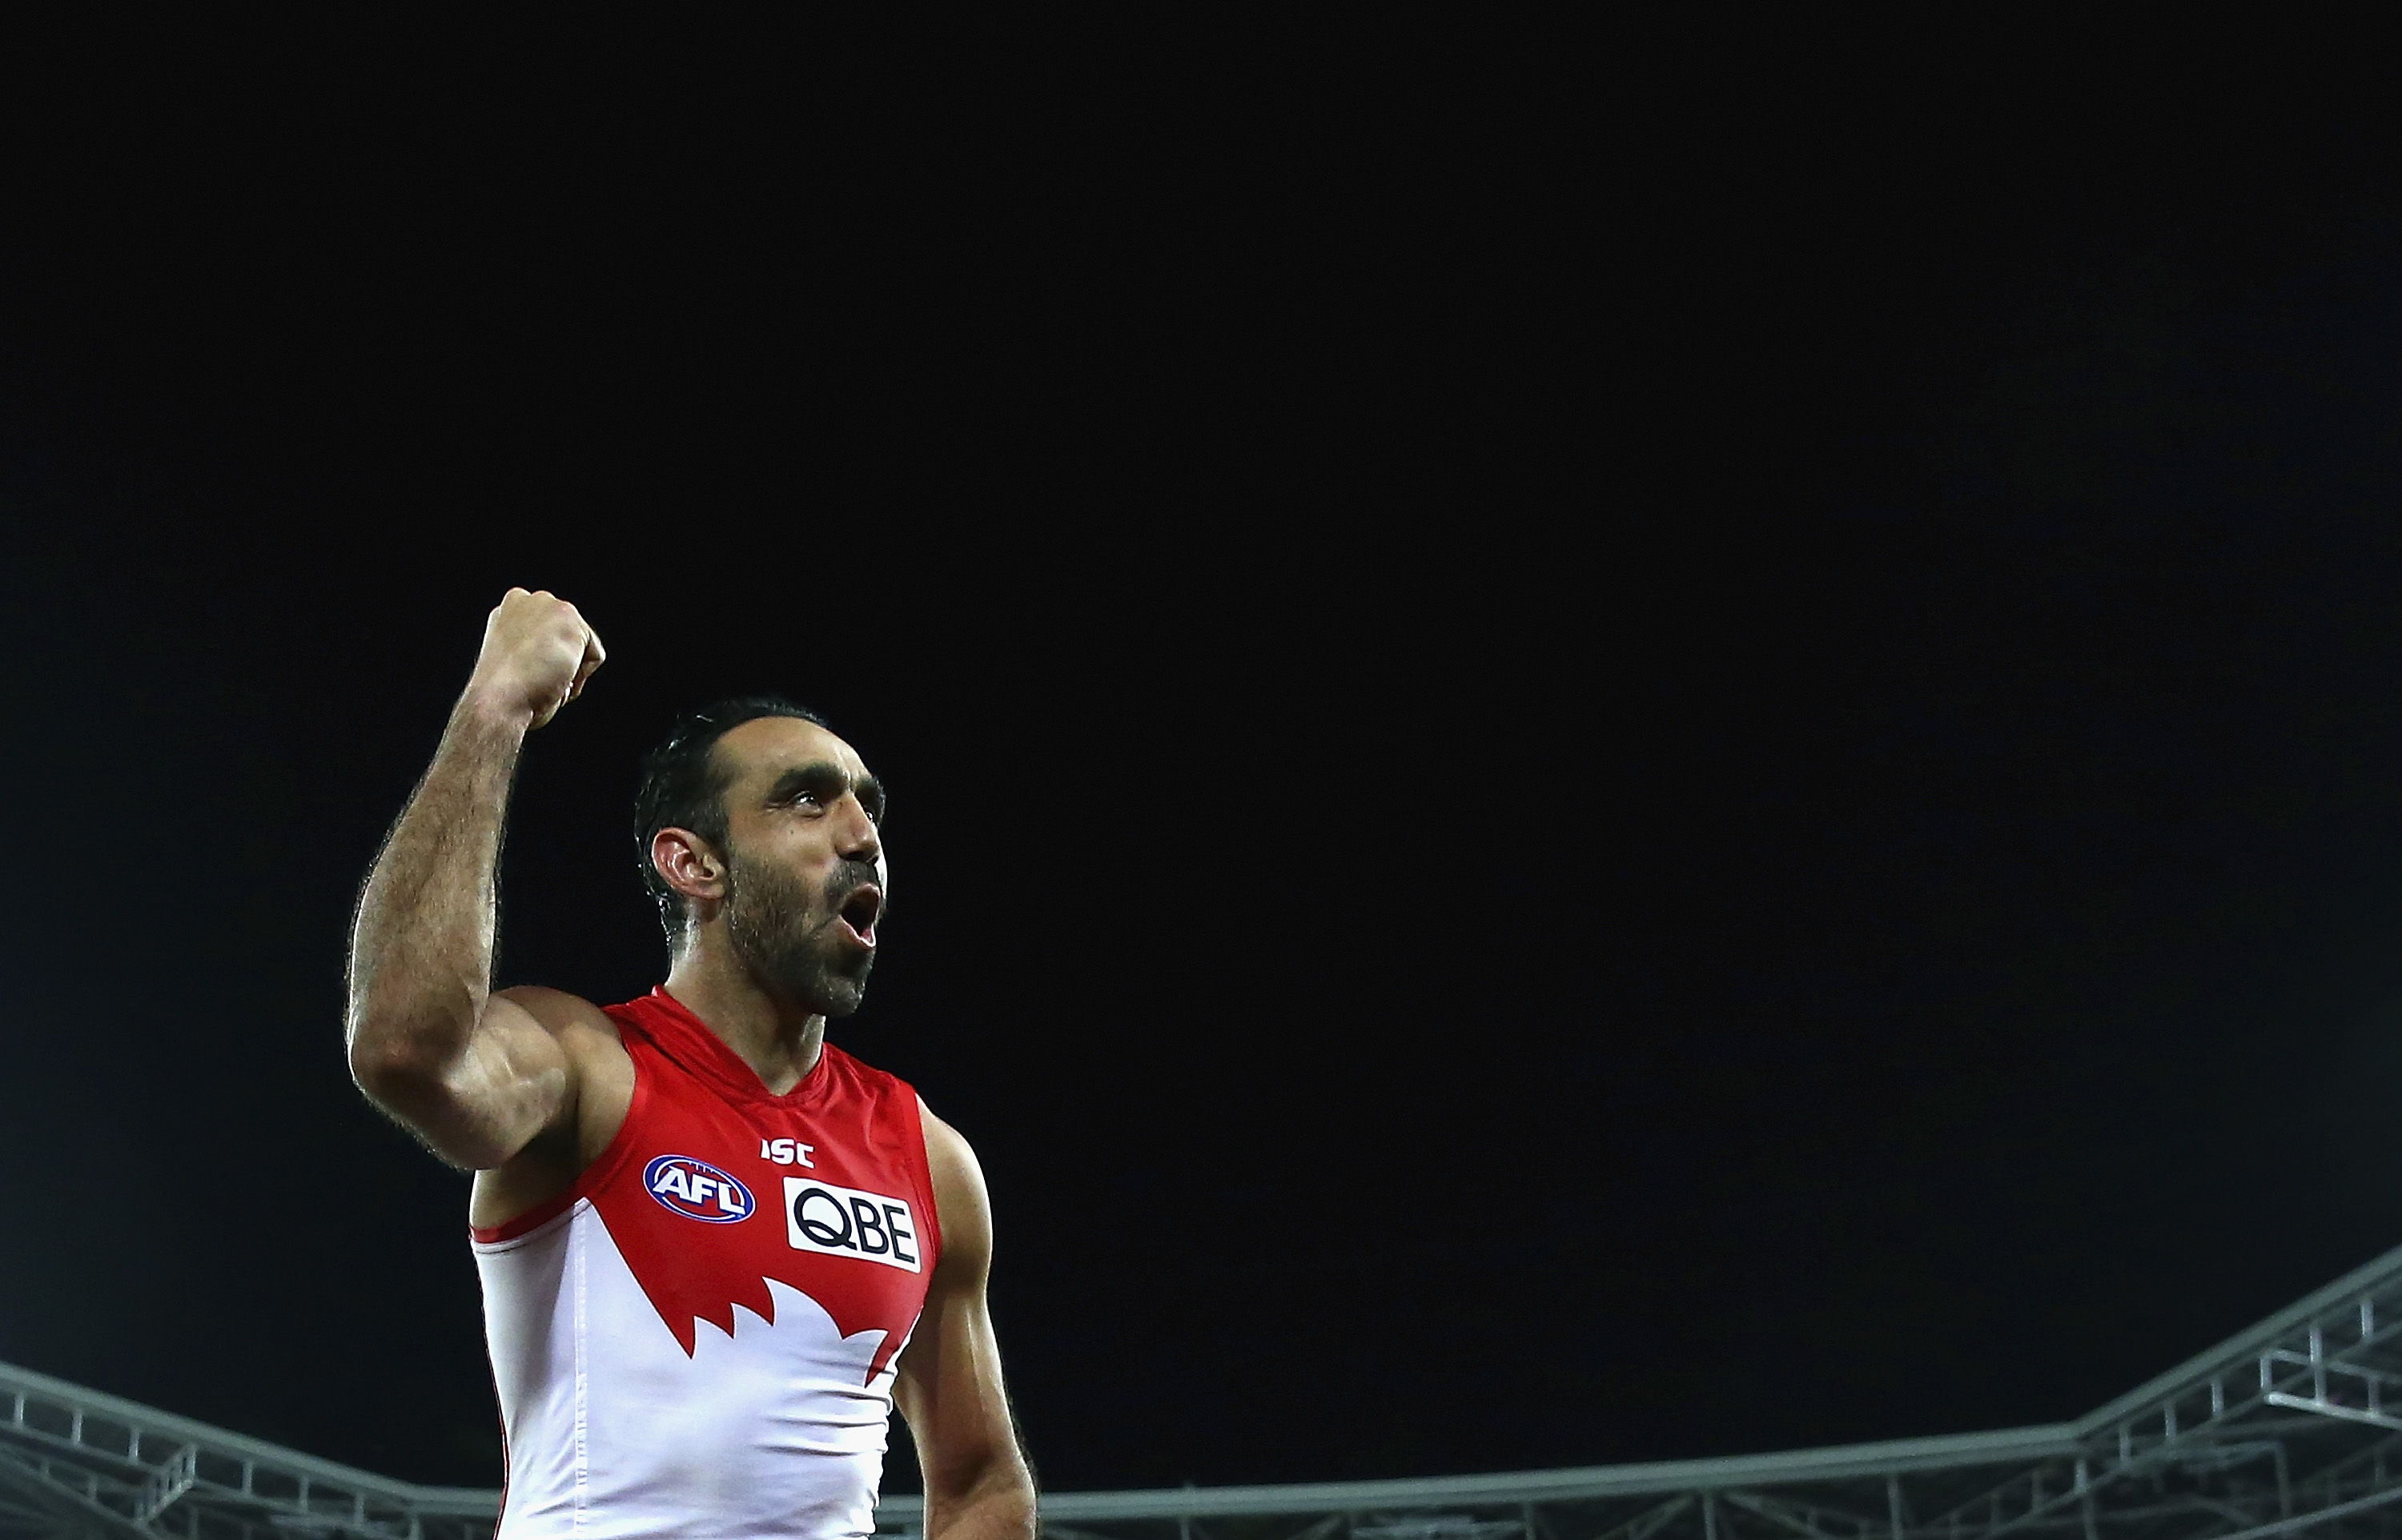 adam goodes_cdf9b55cdajy1ctaeu5n1sk1n?w=3000&h=1687&quality=100 twitter stands behind adam goodes after racist meme sparks outrage